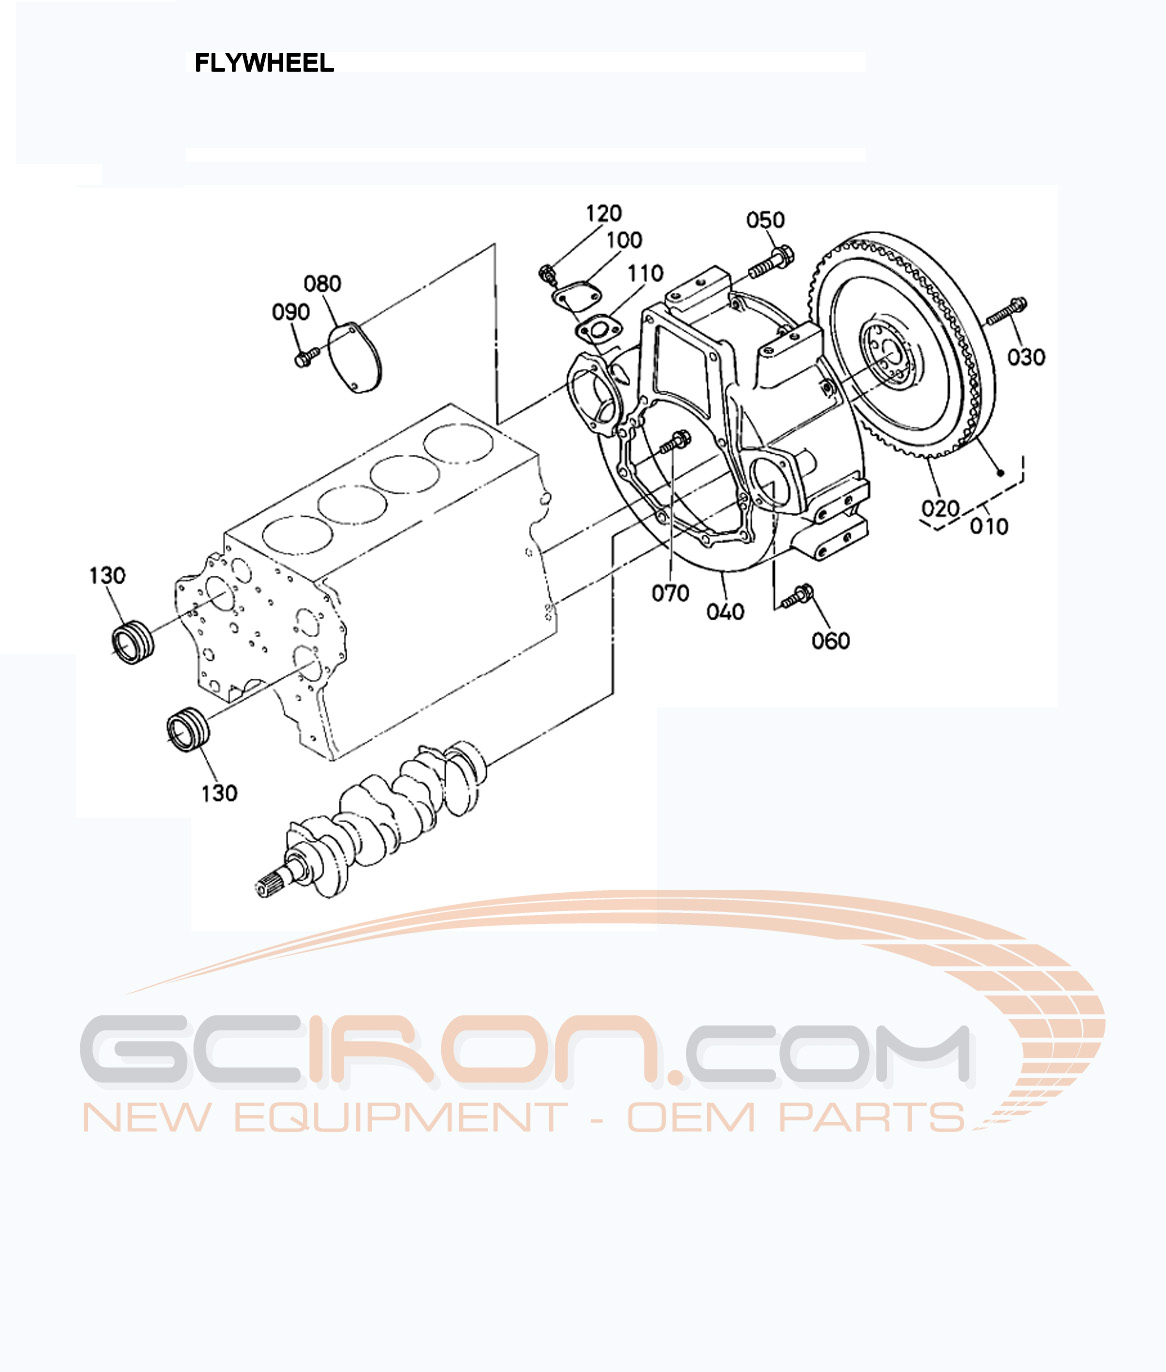 Construction Equipment Parts Jlg Parts From Gciron